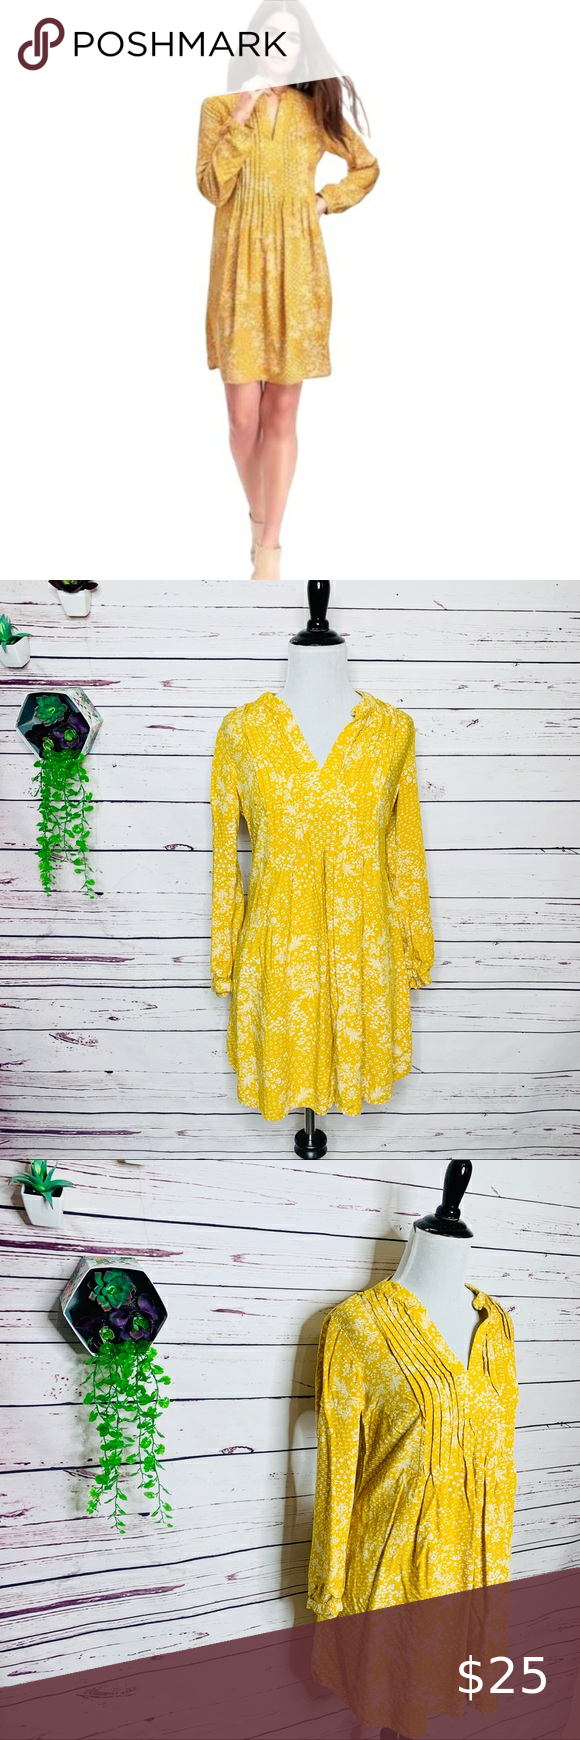 Old Navy Pintuck Long Sleeve Swing Tunic Dress Xs Yellow Dress Summer Swing Tunic Dress Yellow Dress Outfit Summer [ 1740 x 580 Pixel ]